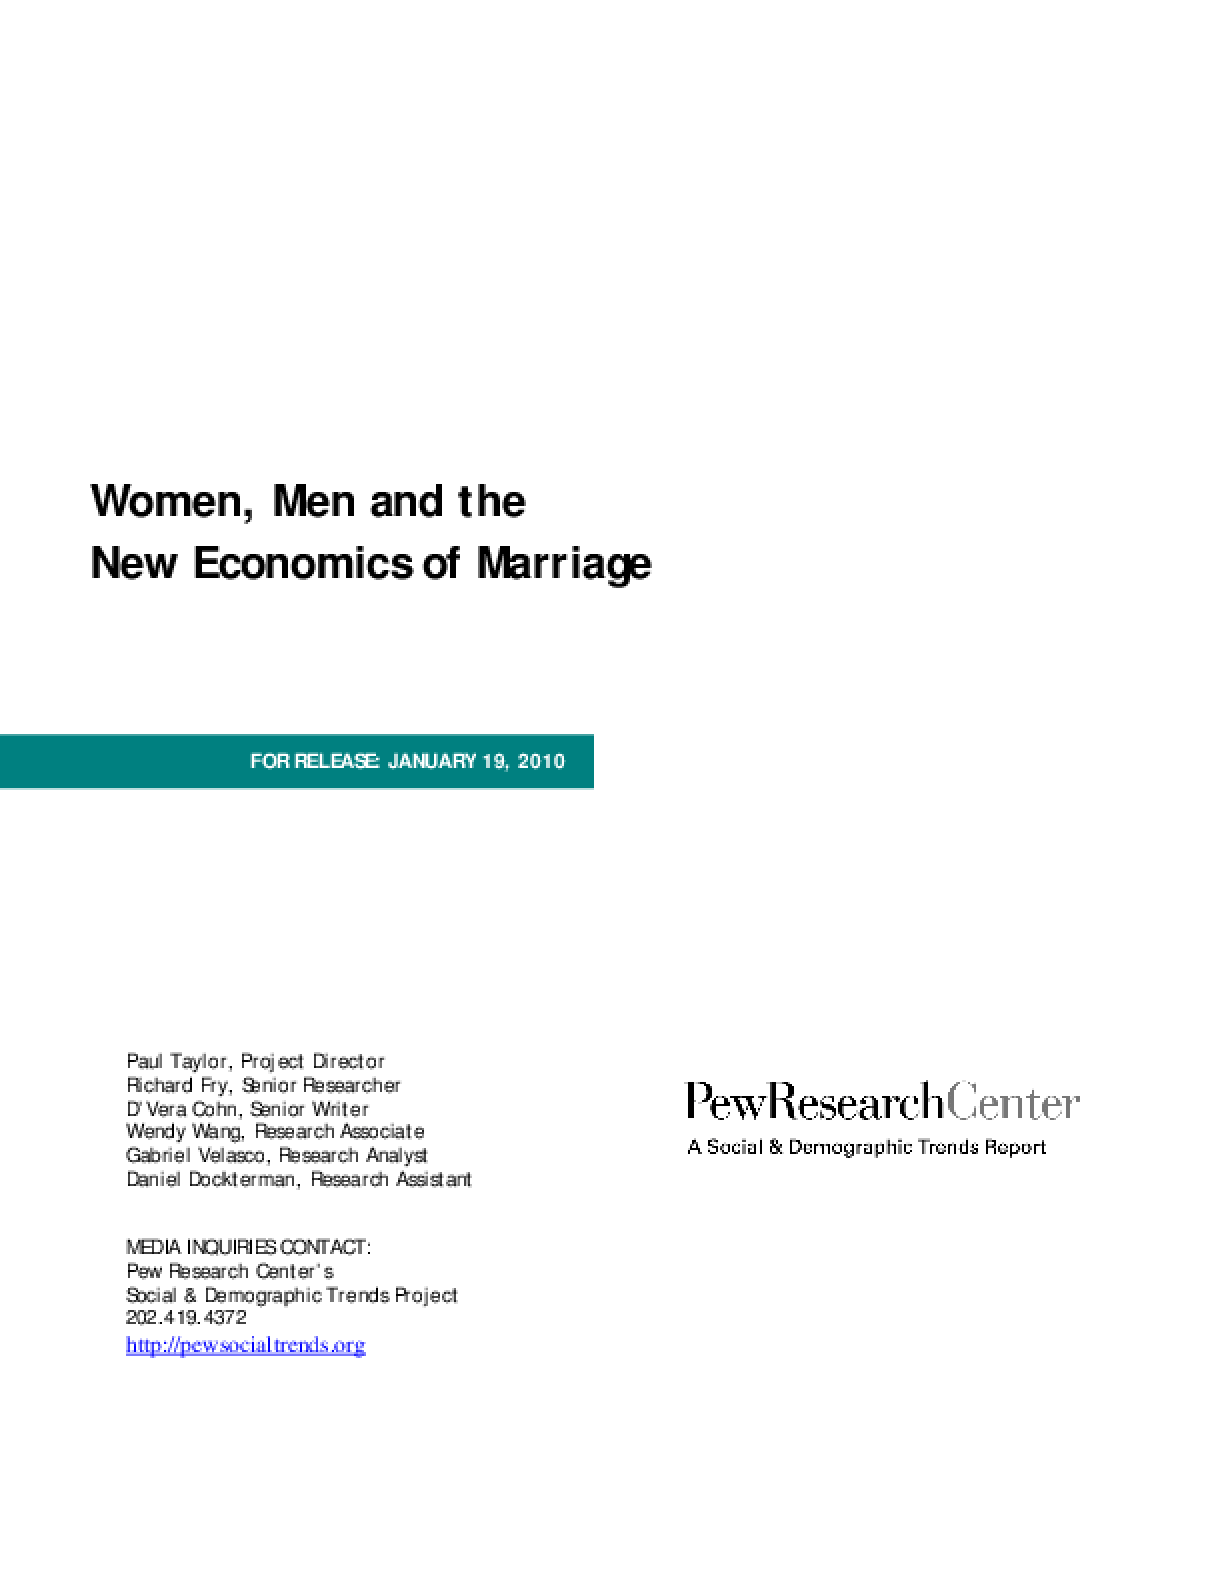 Women, Men and the New Economics of Marriage